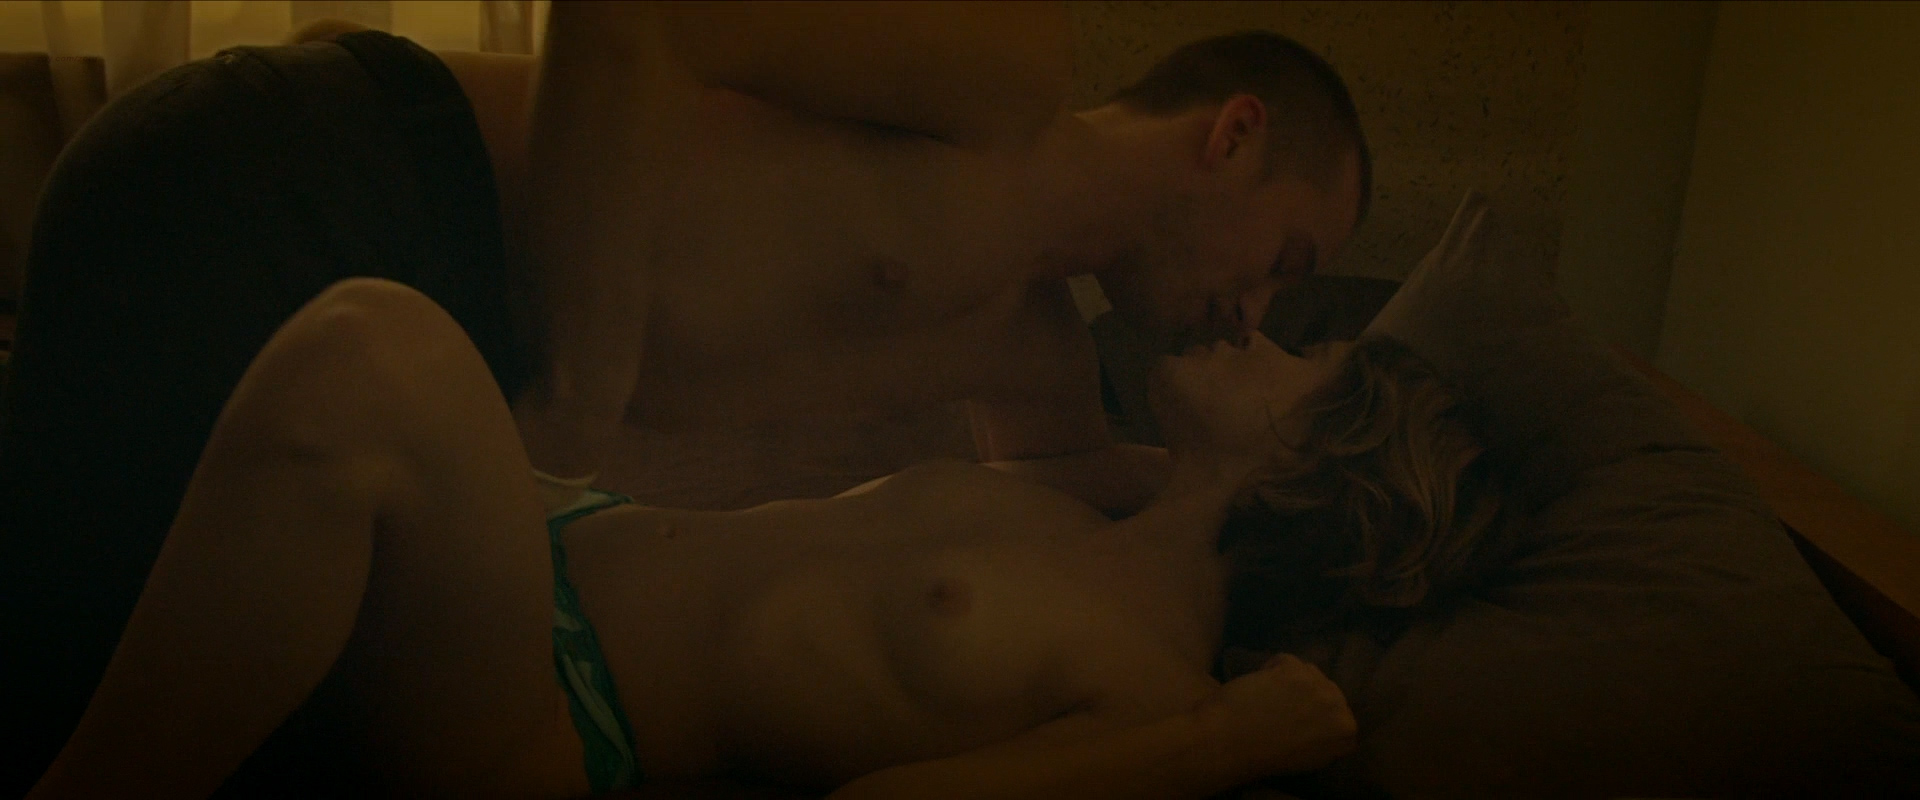 Nadia Hilker nude and sex and Augie Duke nude topless - Spring (2014) BluRay hd720/1080p (5)